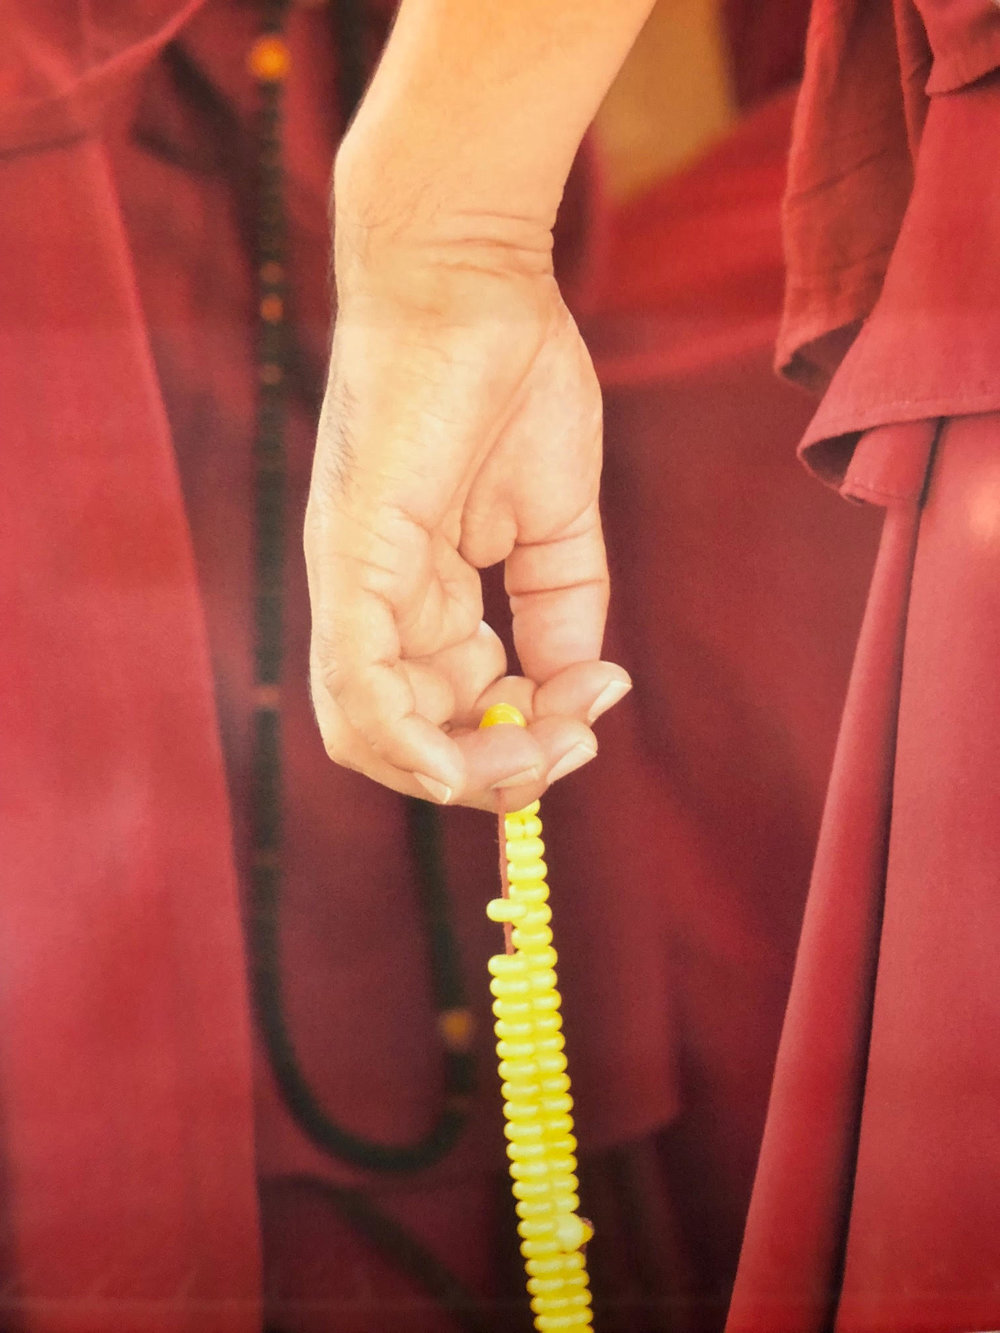 179-Legault-photo of monk with yellow beads.jpg